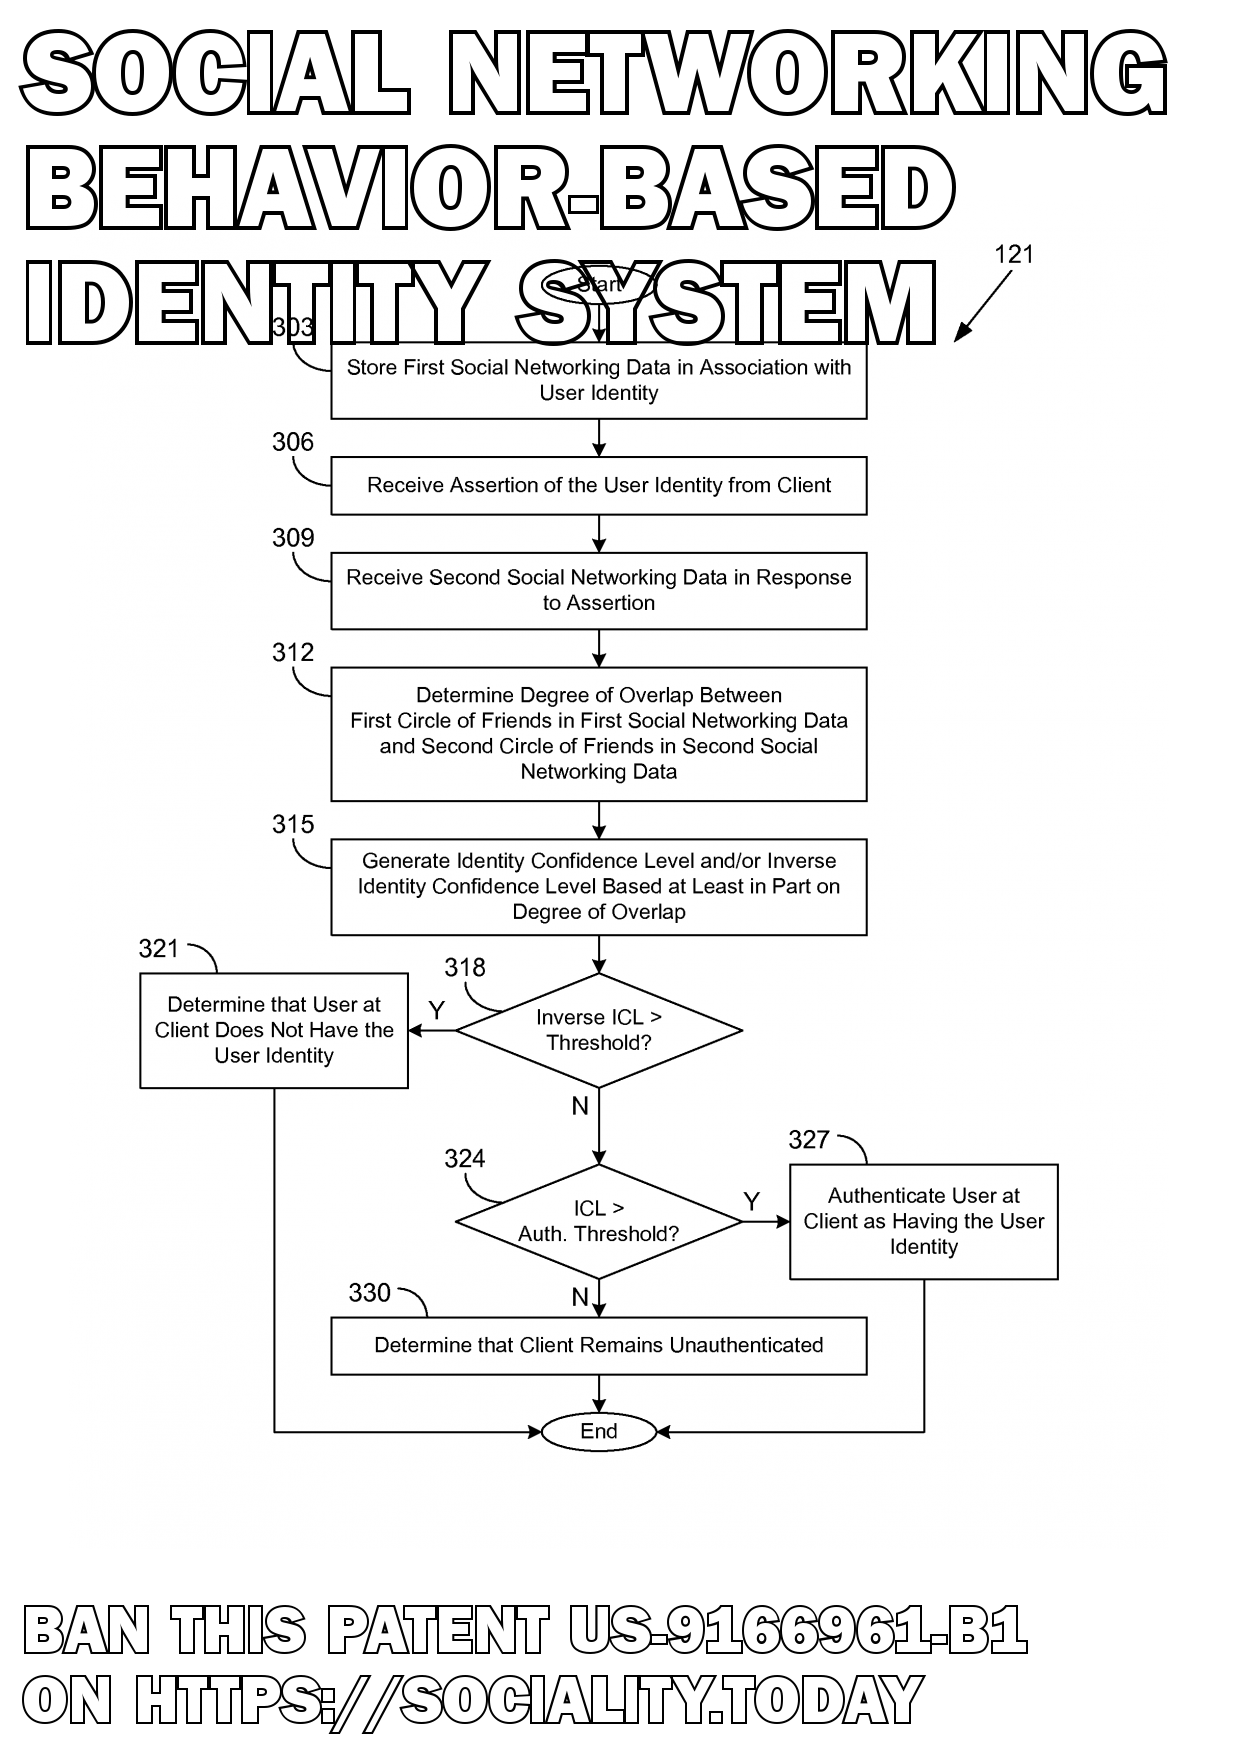 Social networking behavior-based identity system  - US-9166961-B1